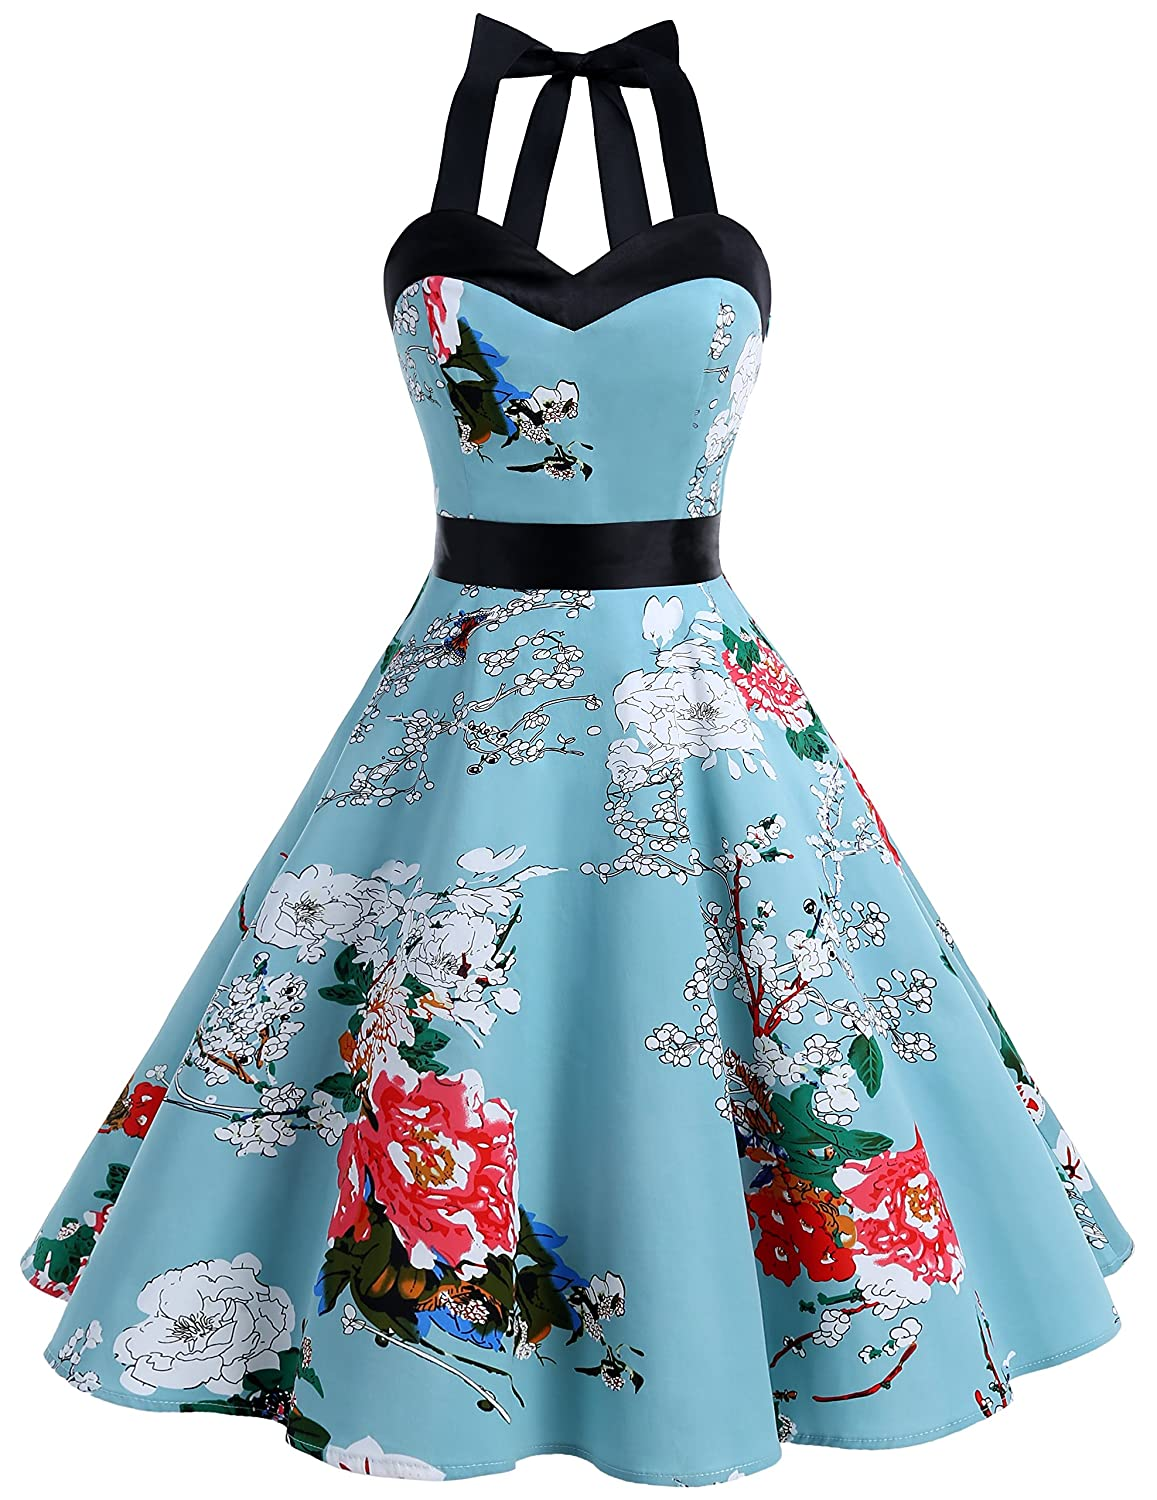 TALLA XL. Dresstells® Halter 50s Rockabilly Polka Dots Audrey Dress Retro Cocktail Dress Floral XL